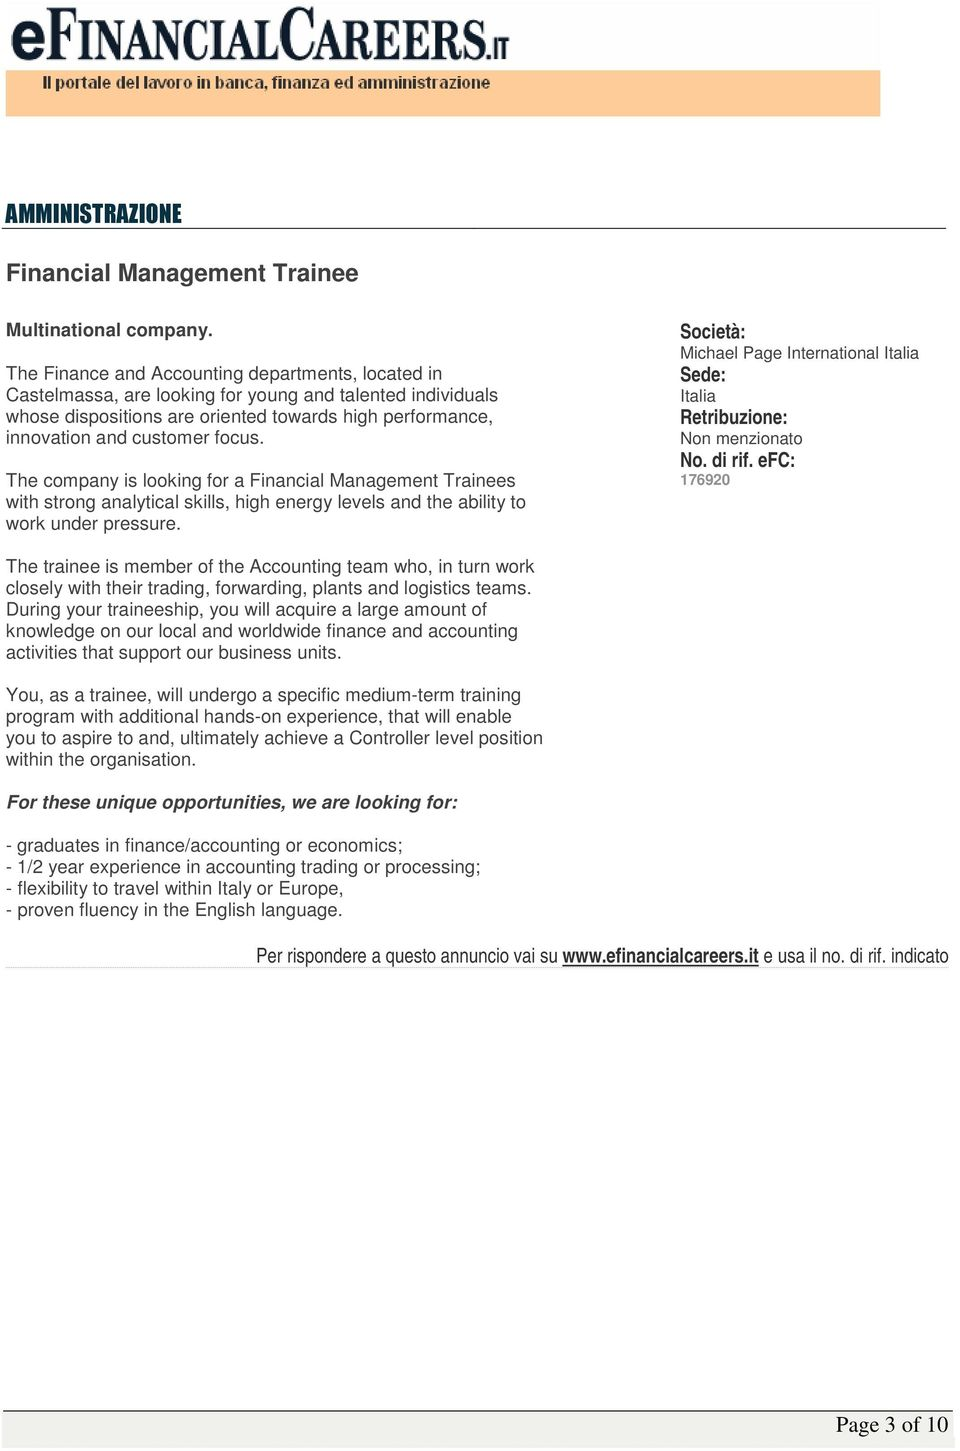 The company is looking for a Financial Management Trainees with strong analytical skills, high energy levels and the ability to work under pressure.